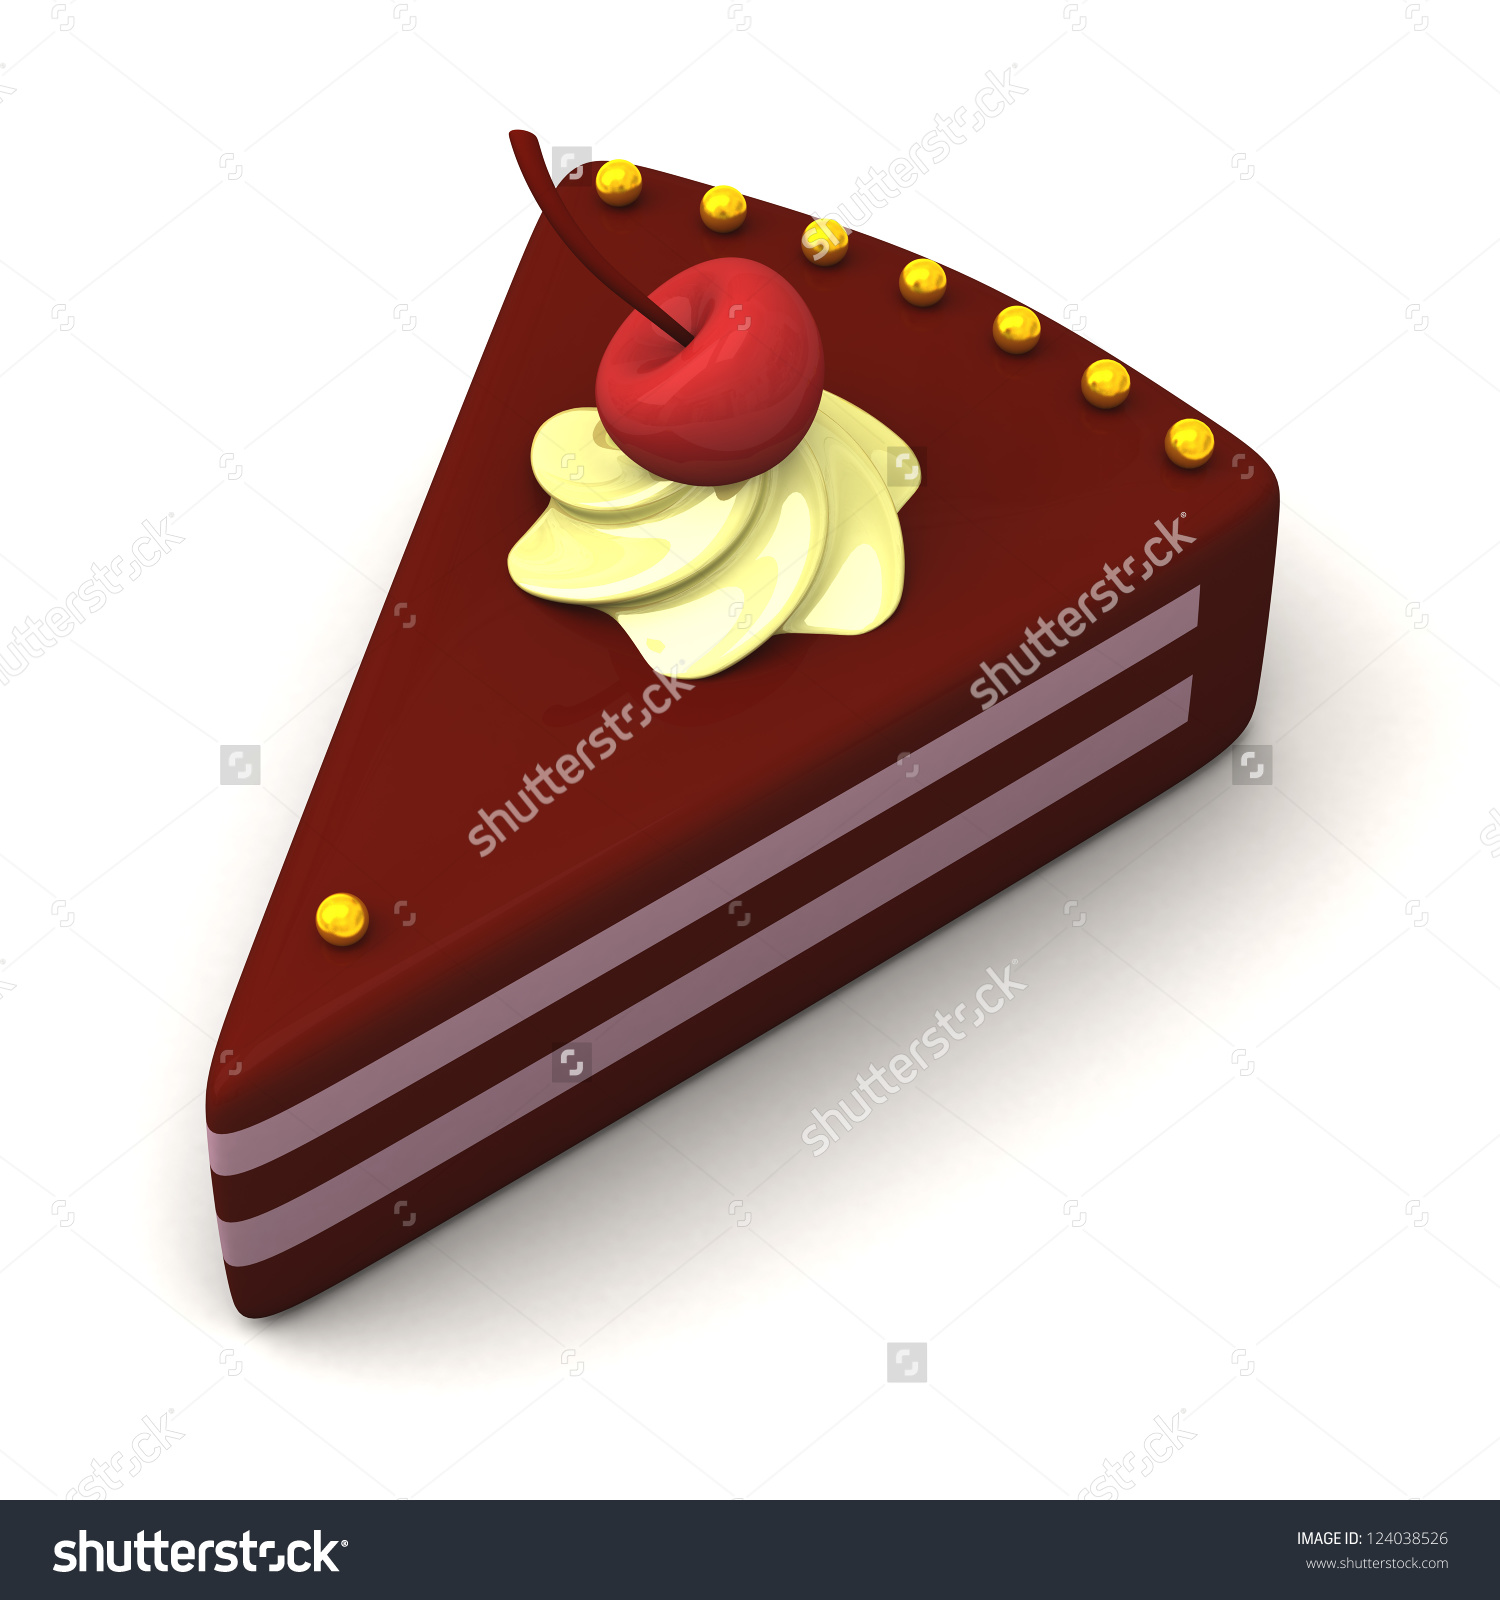 Piece of Cake Idiom Clip Art